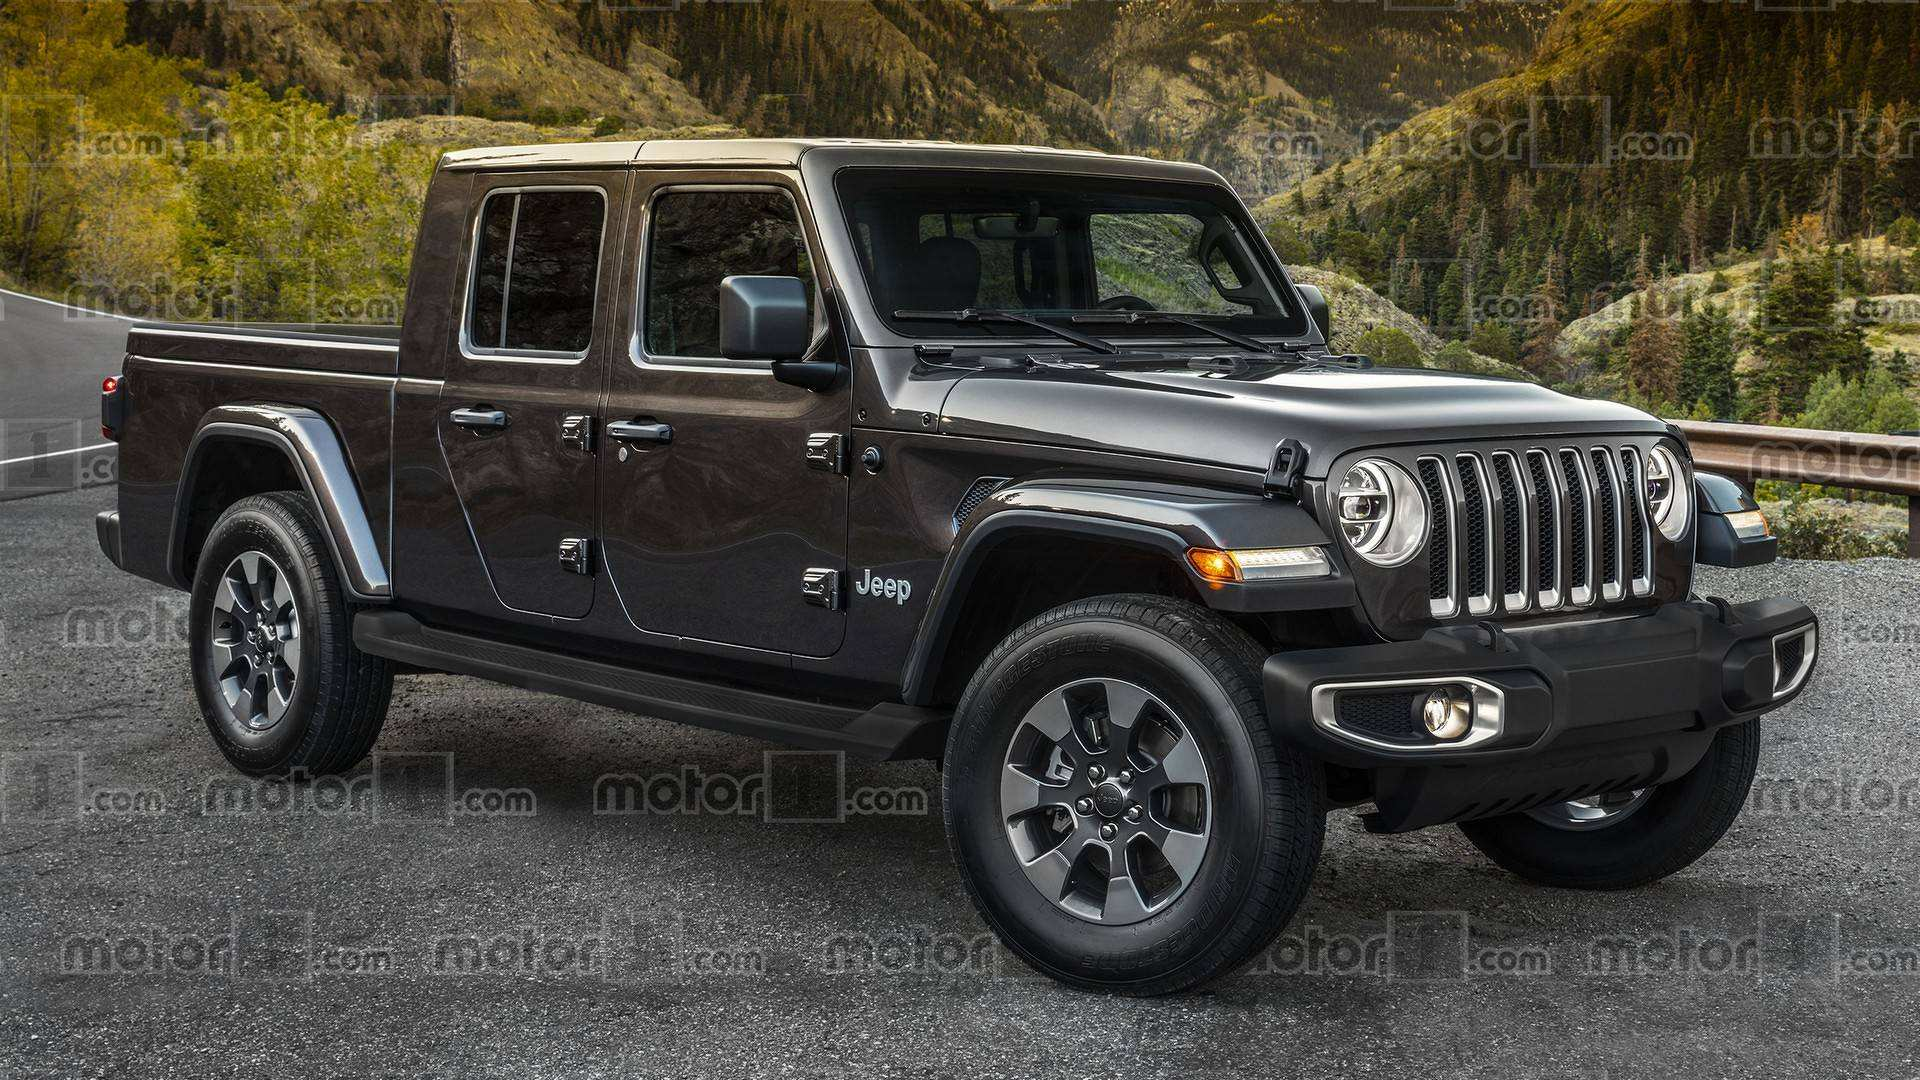 33 The 2019 Jeep Images Photos for 2019 Jeep Images